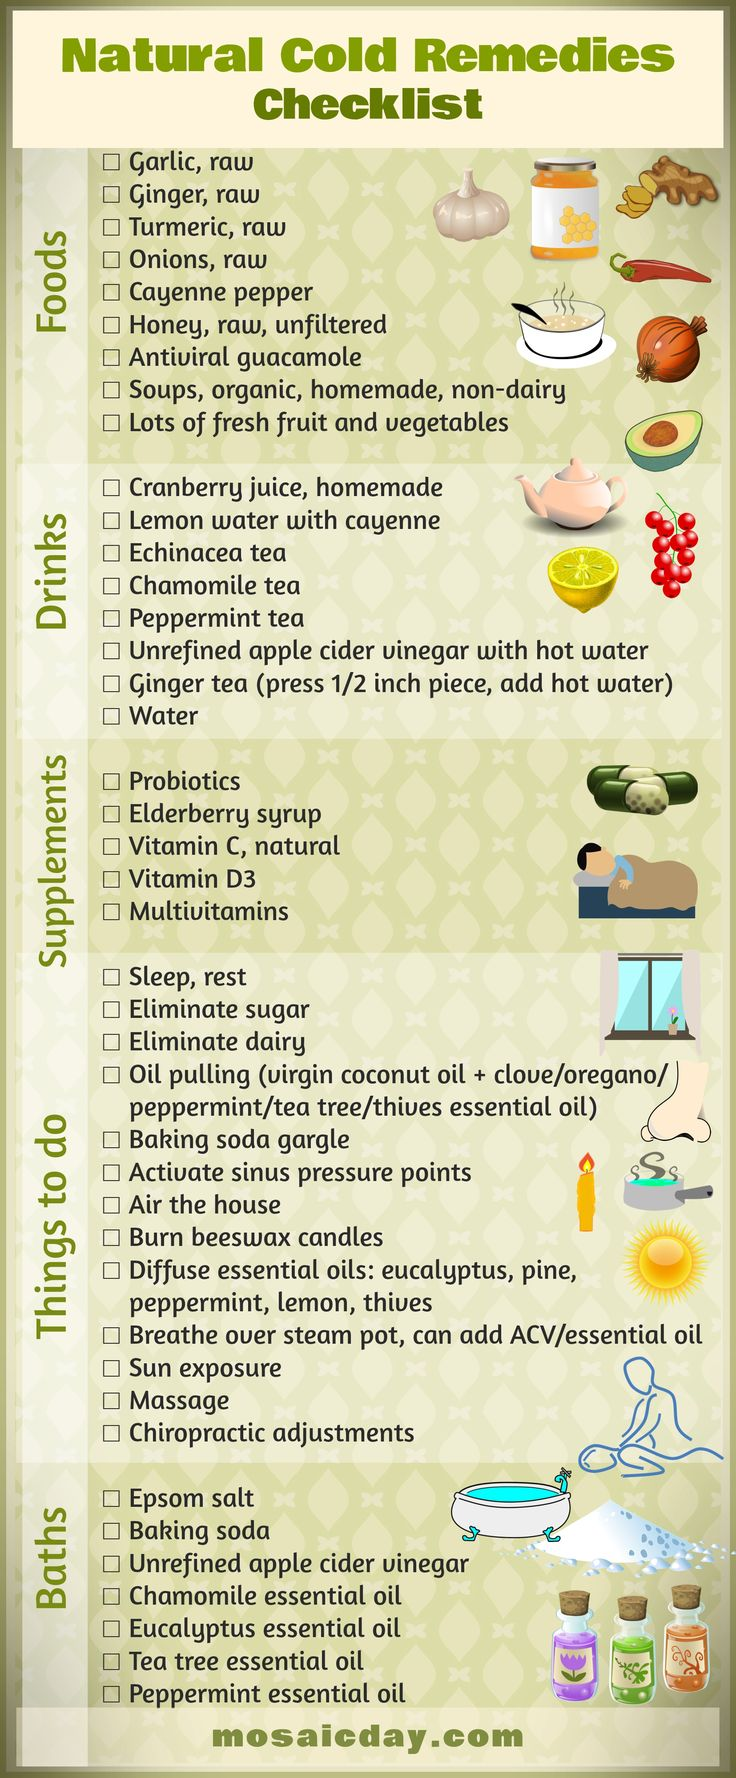 Natural Cold Remedies Checklist: Food, Supplements, Things To Do, EOs